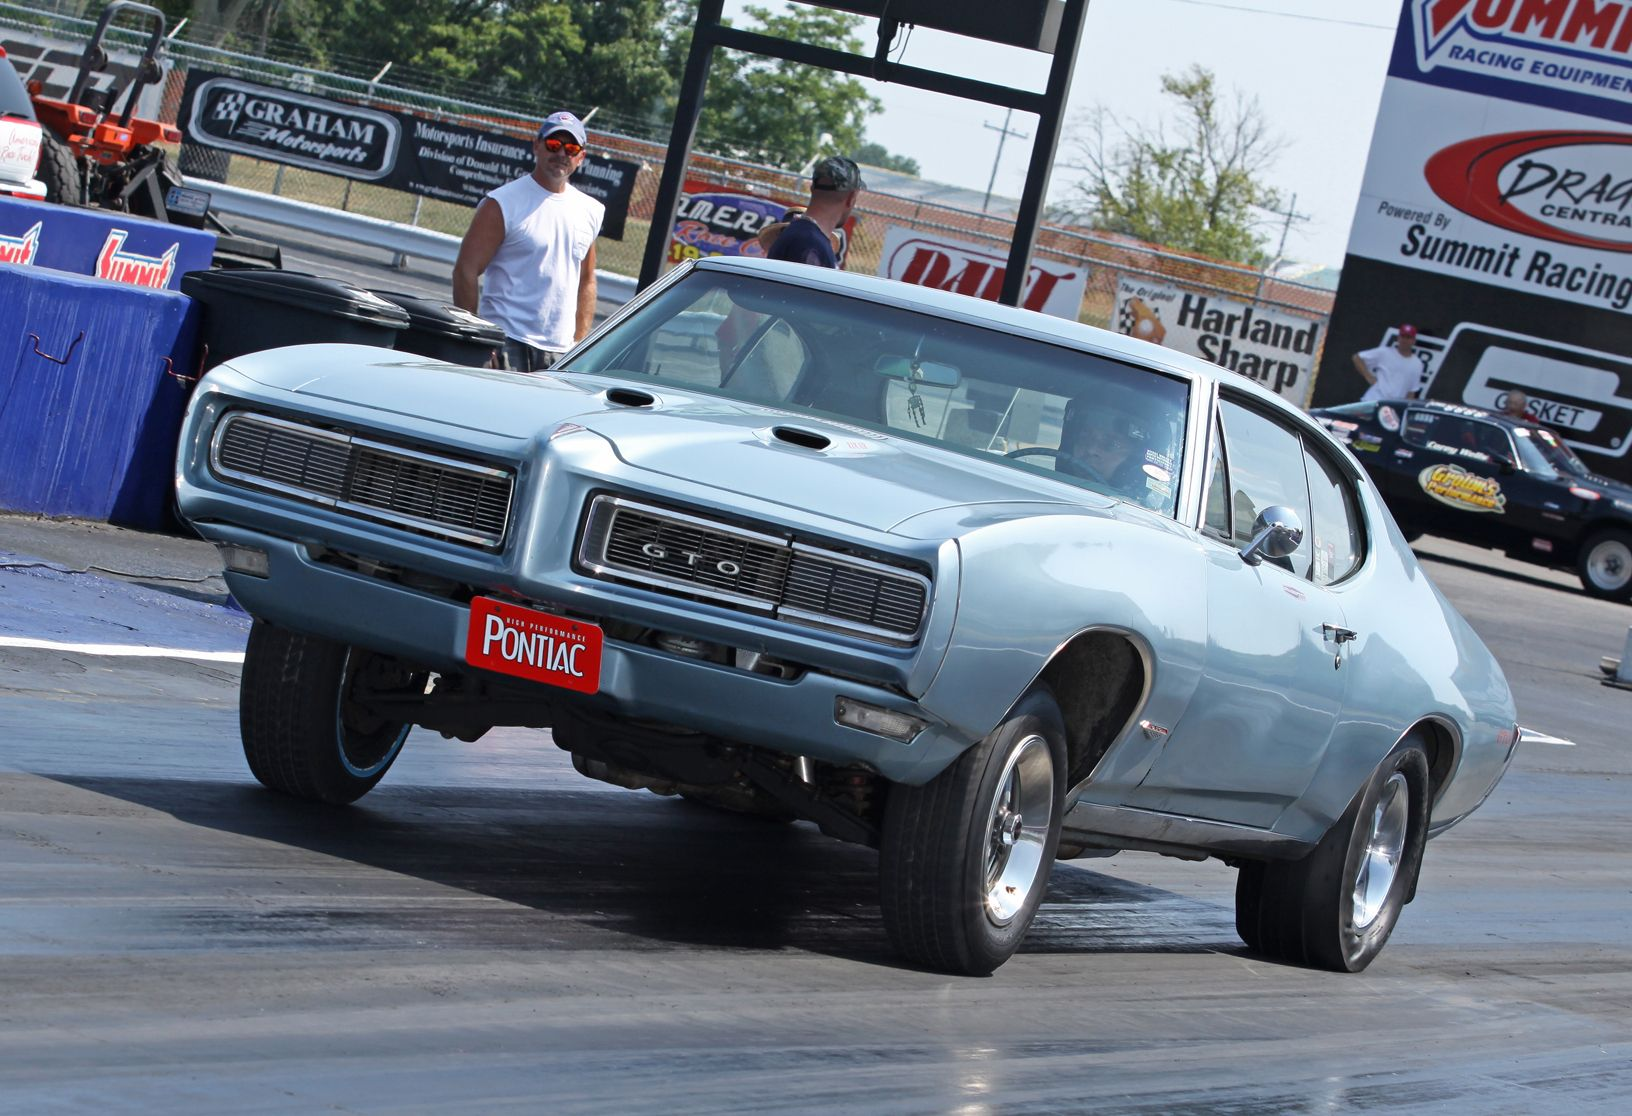 tom scala s 68 gto which is powered by a 455 464 with edelbrock rh pinterest com